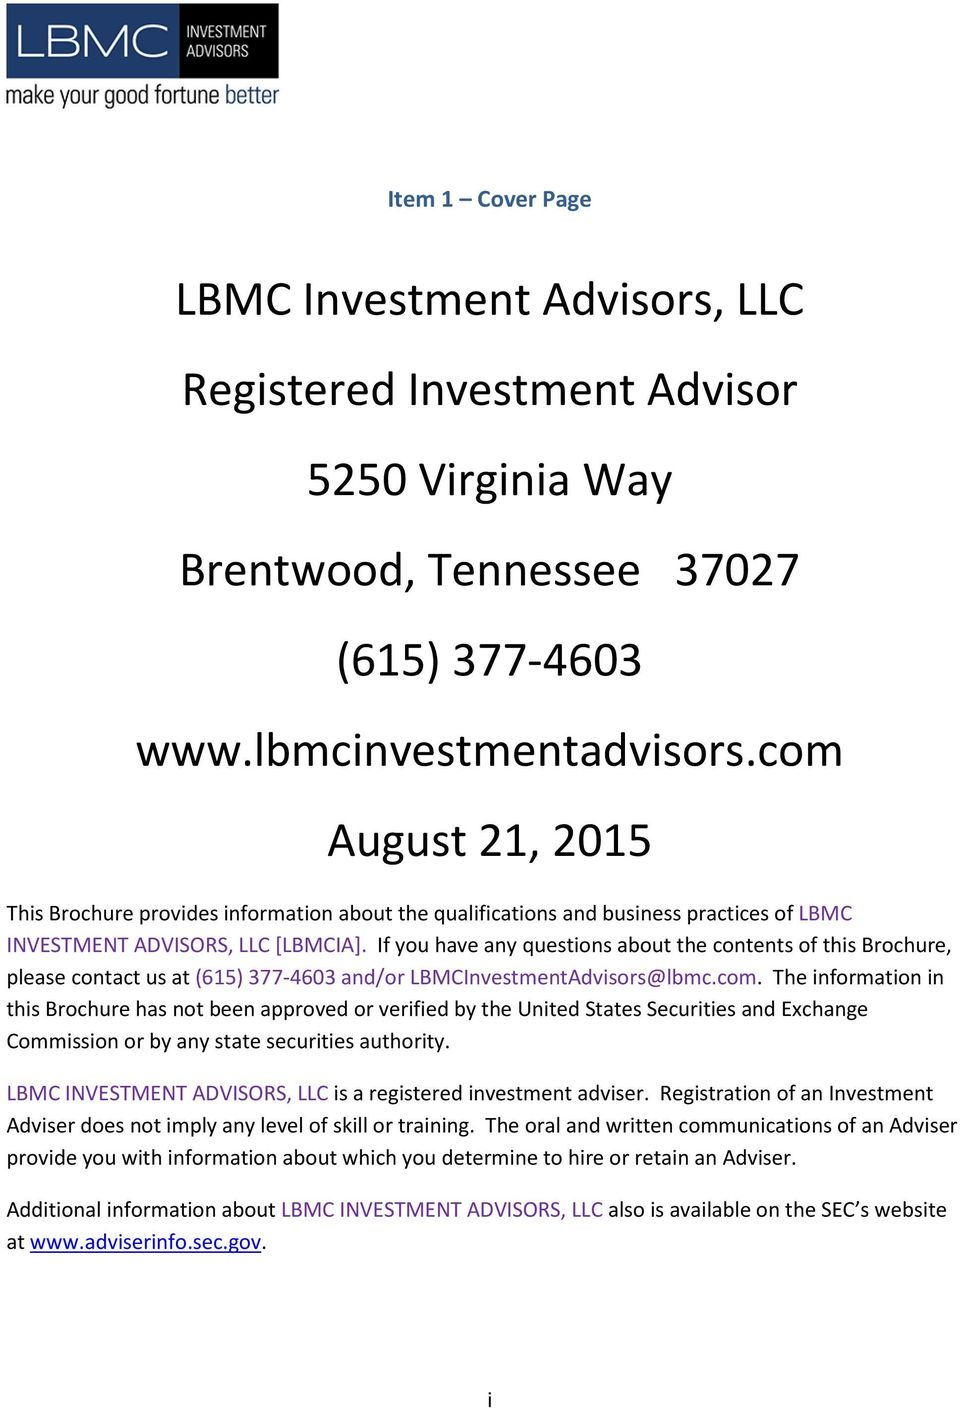 If you have any questions about the contents of this Brochure, please contact us at (615) 377-4603 and/or LBMCInvestmentAdvisors@lbmc.com.